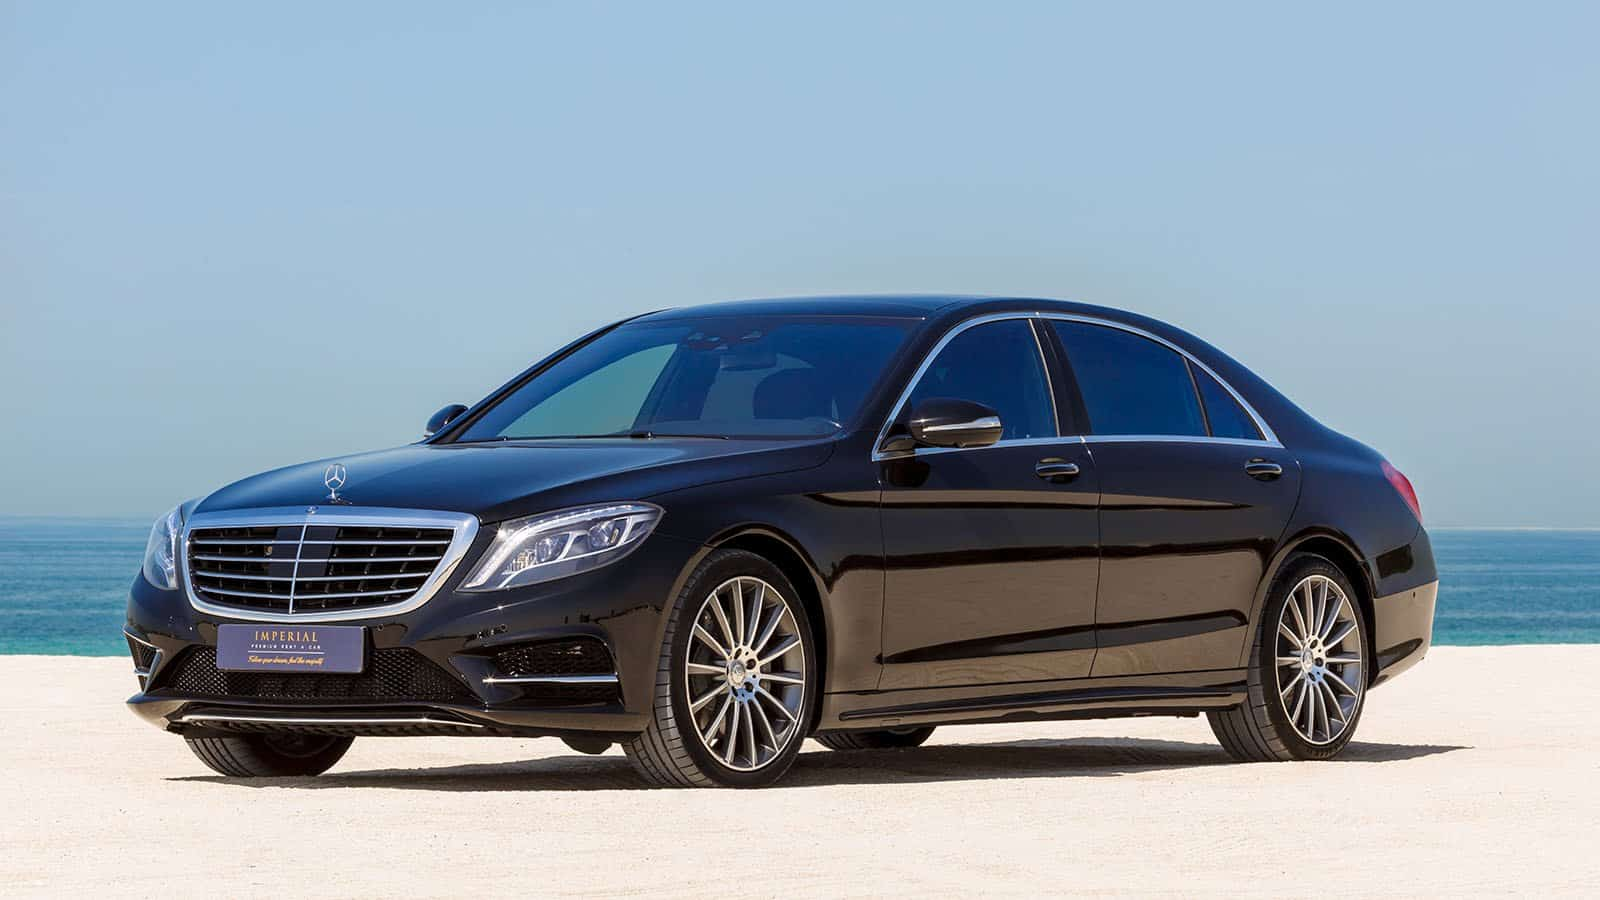 mercedes benz s class rent dubai imperial premium rent a car. Black Bedroom Furniture Sets. Home Design Ideas